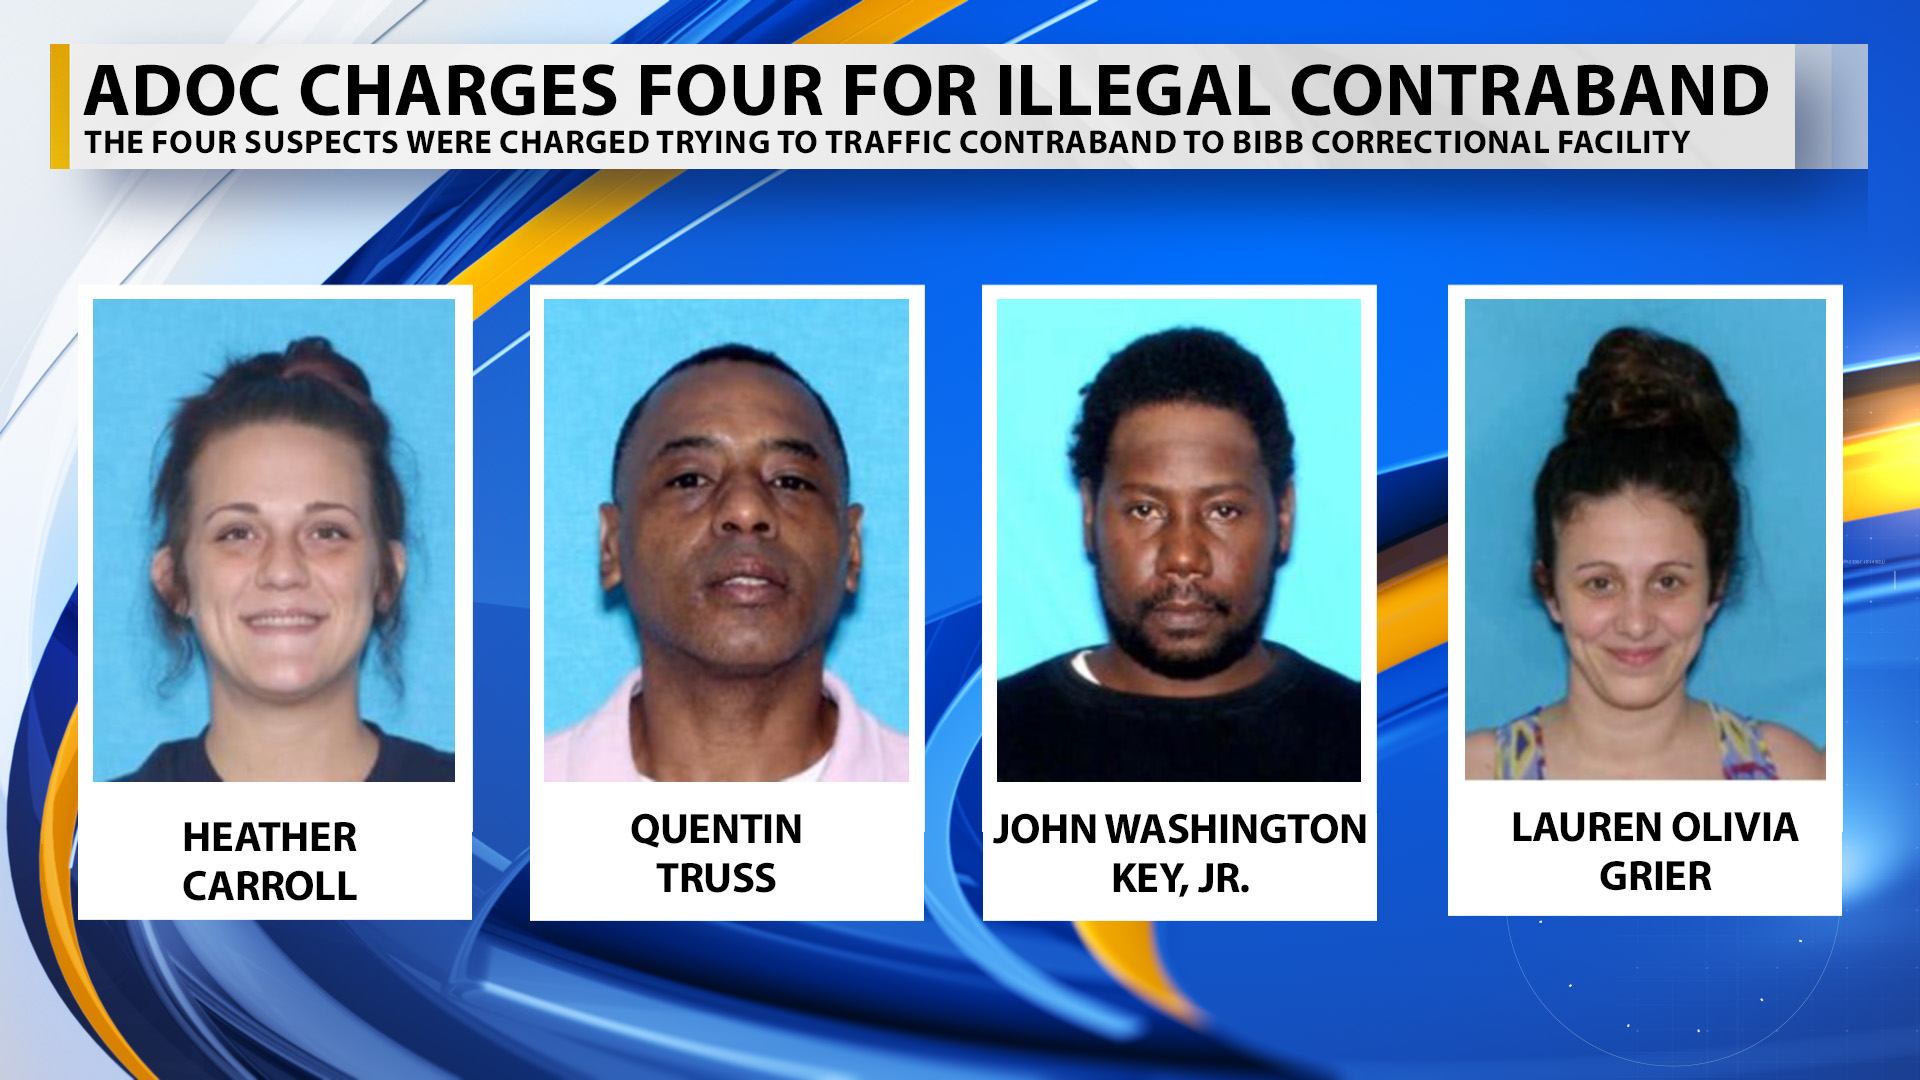 ADOC charges four after finding illegal contraband at Bibb